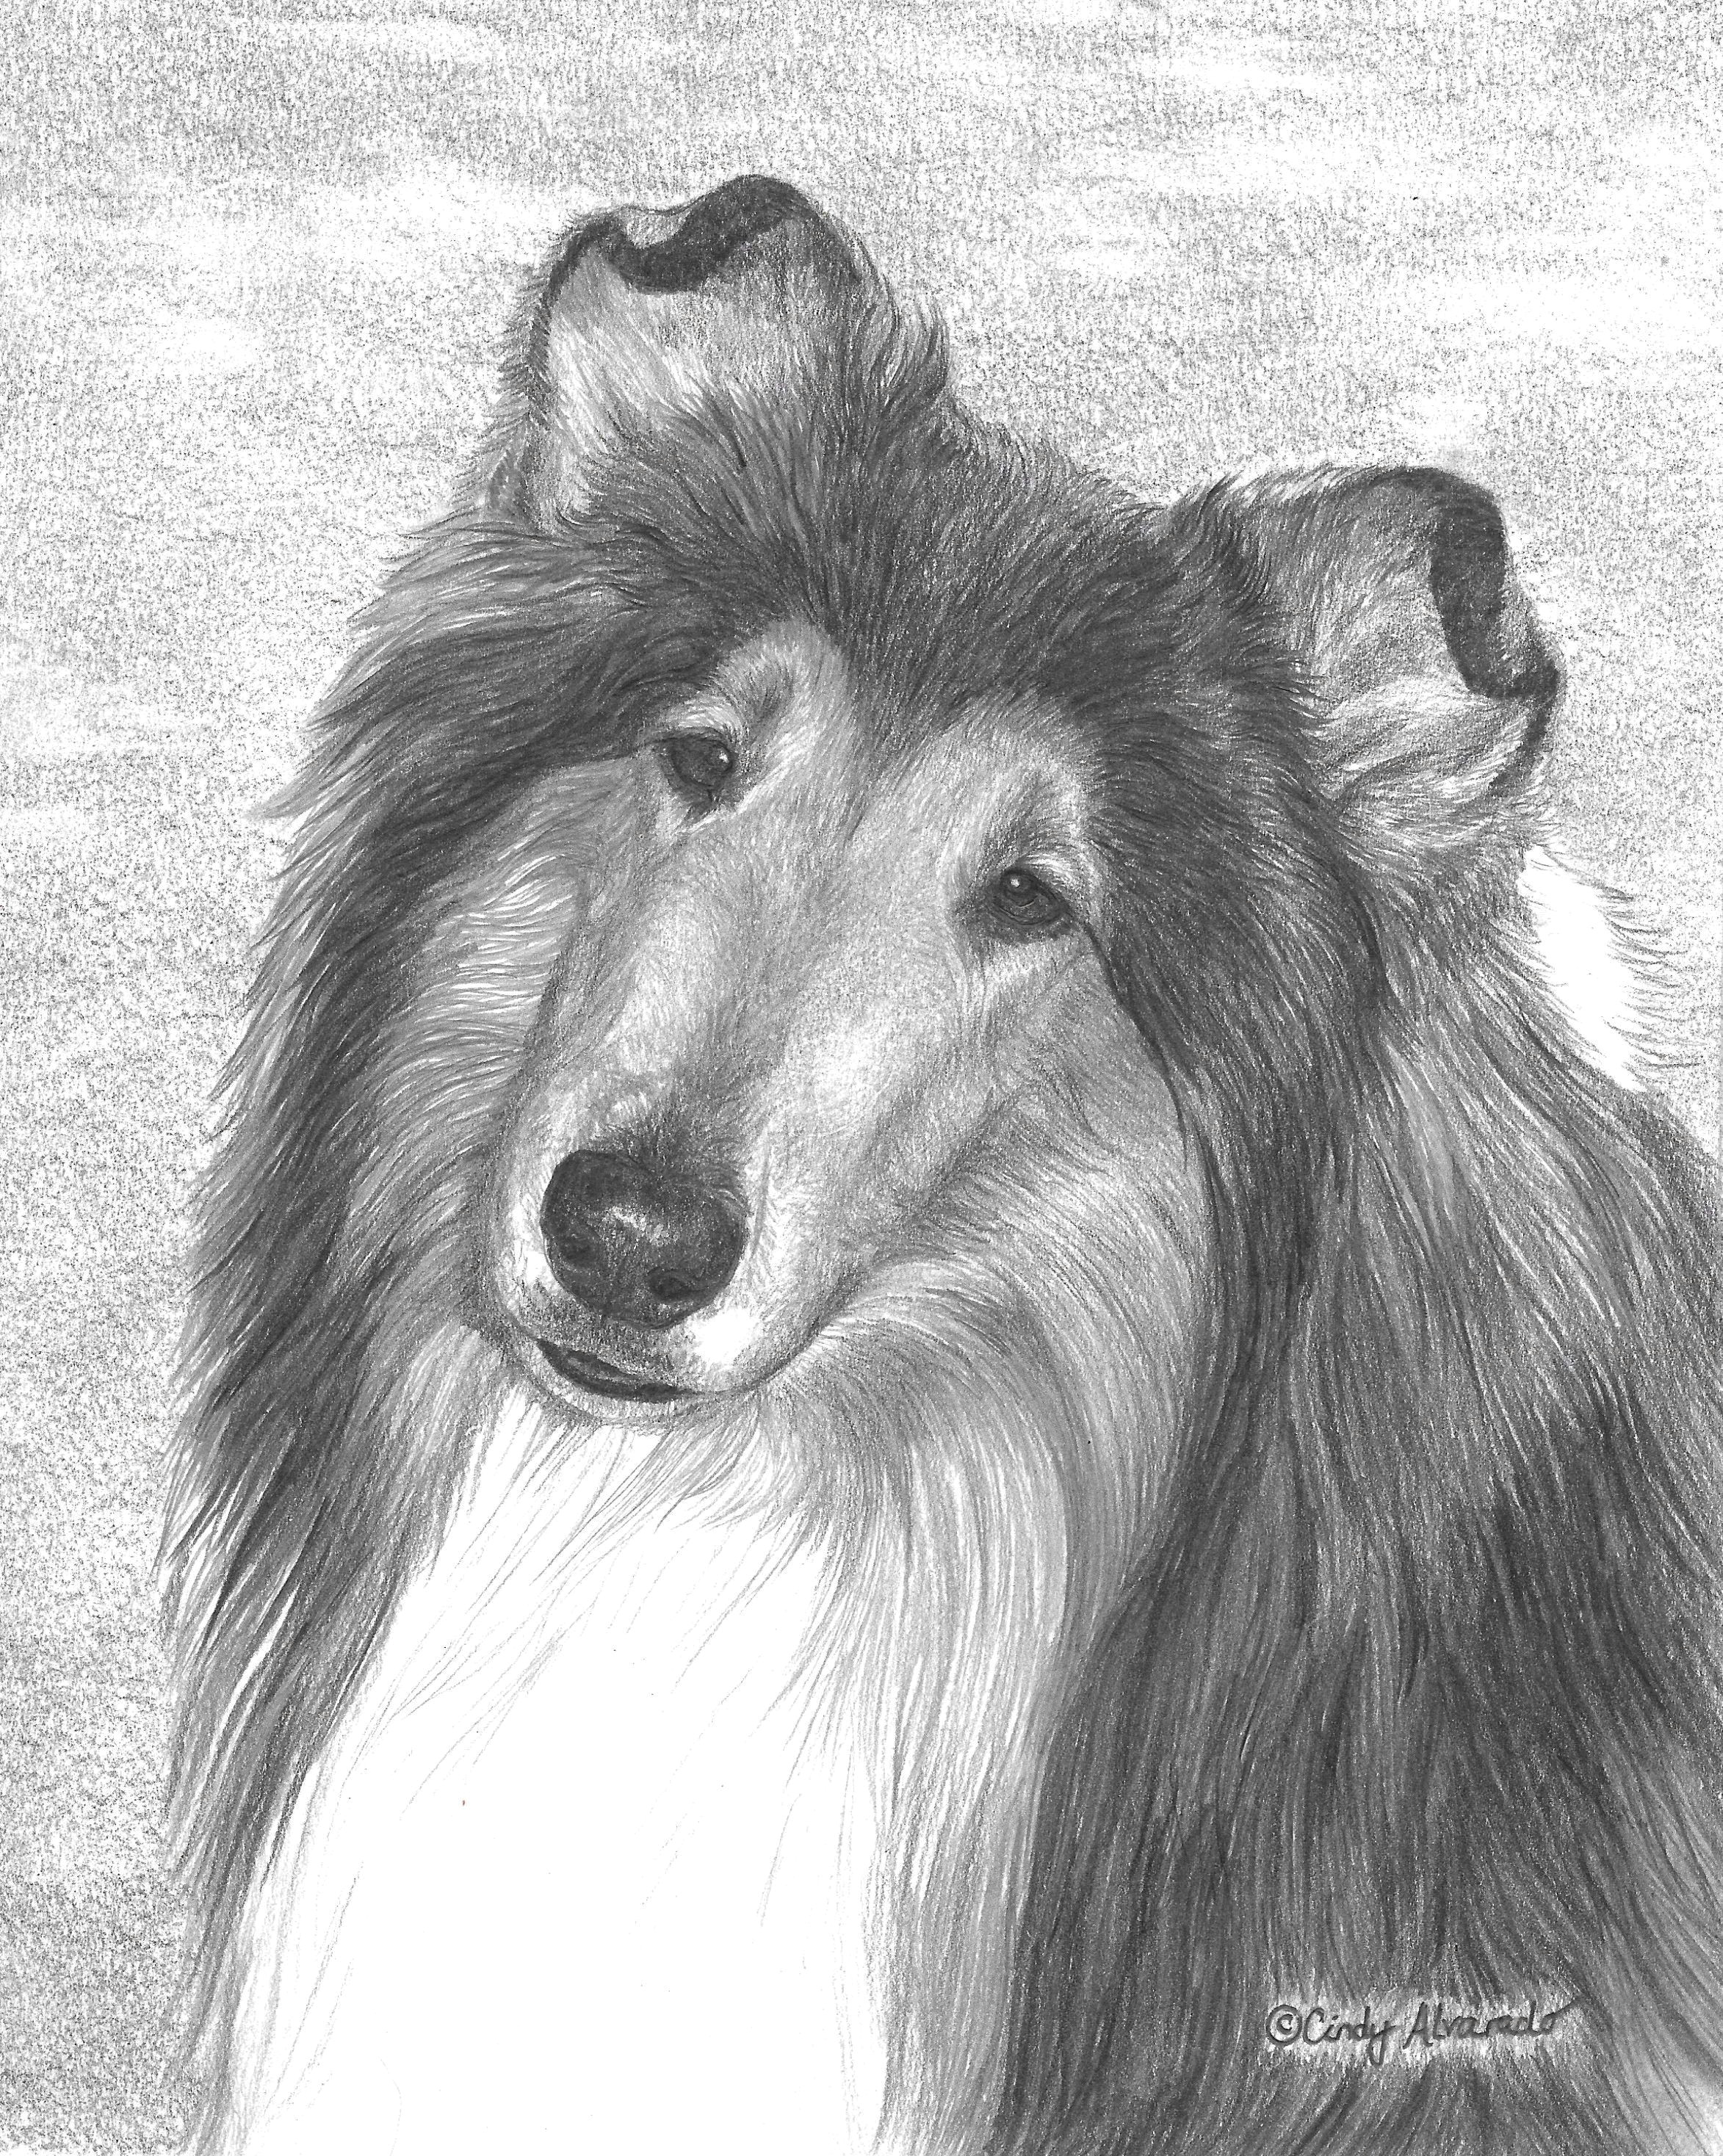 fella portrait commission this is a graphite pencil drawing that i did for a client 8 x 10